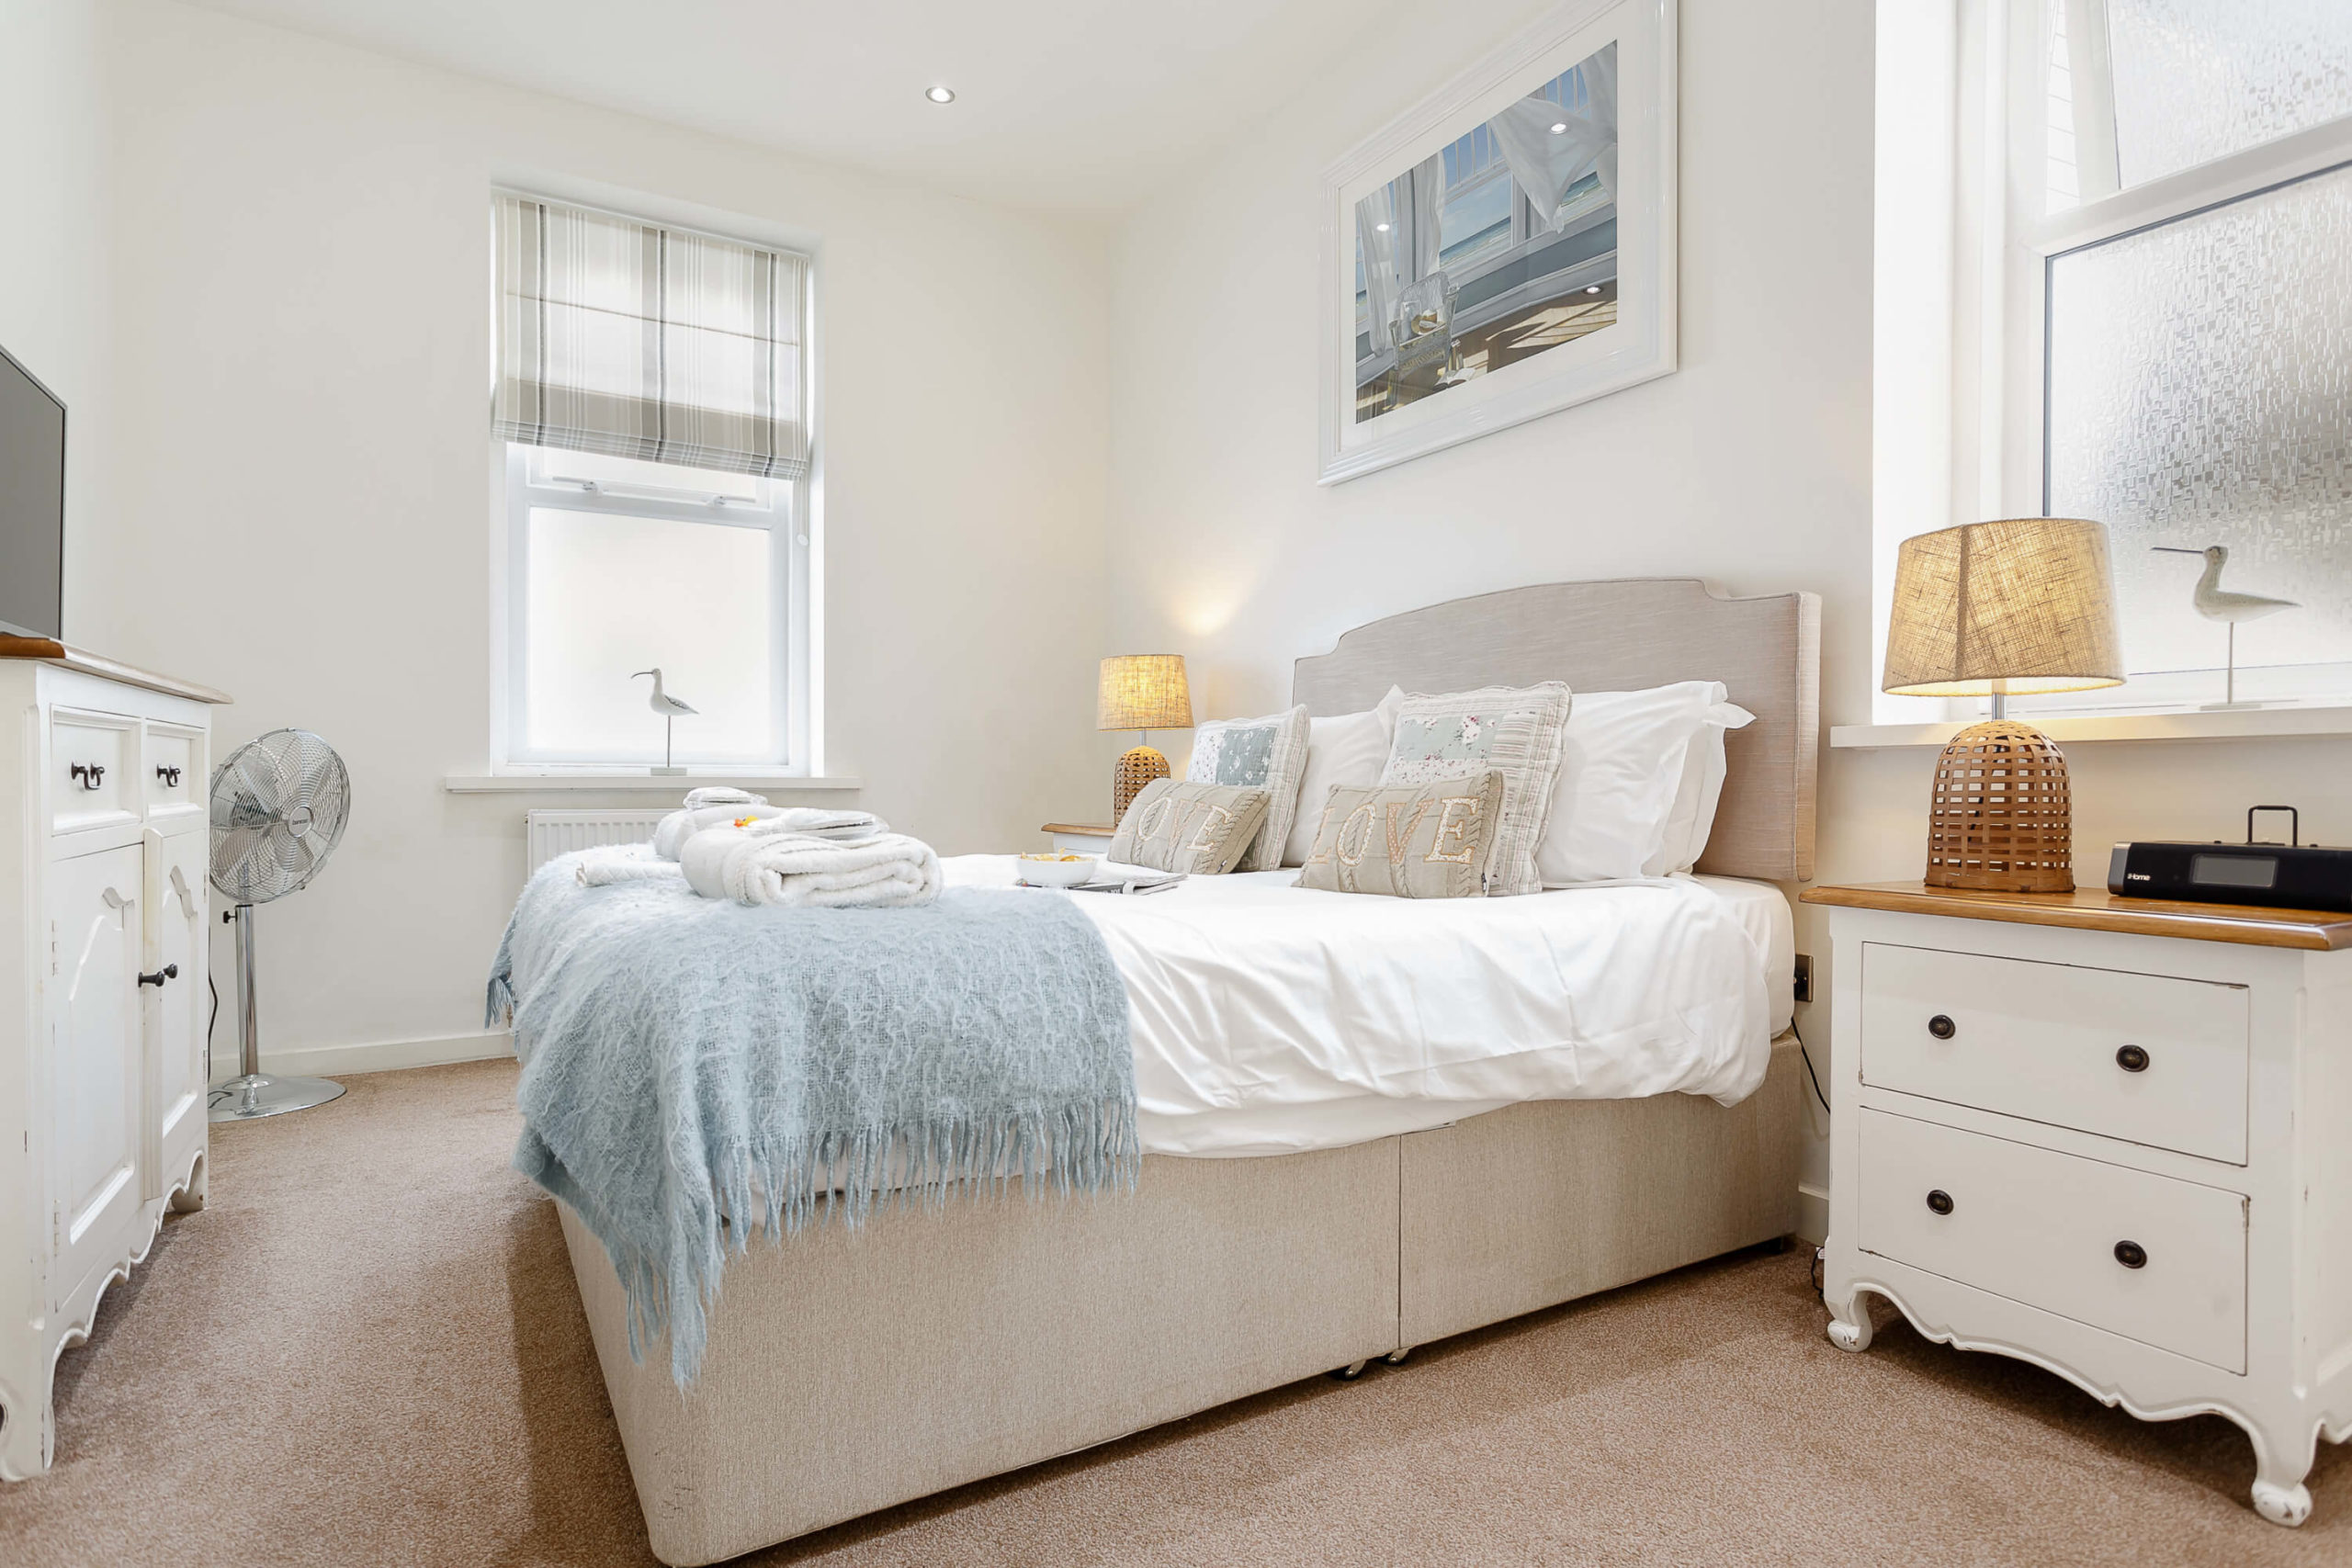 Interior shot of a bedroom in an apartment at beach cove